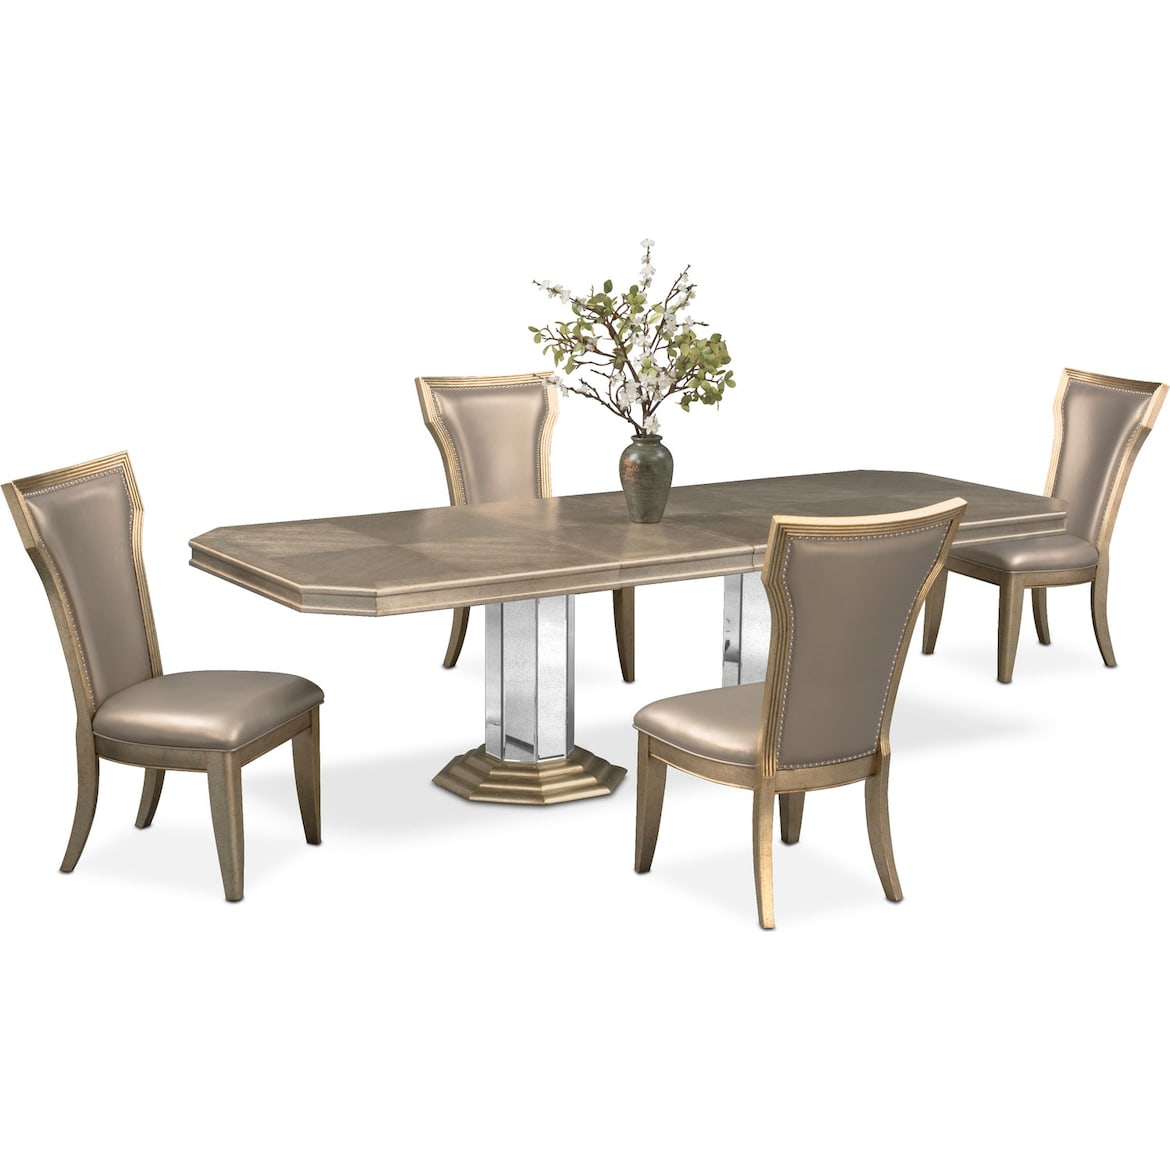 a2bbbf62a946 Angelina Double-Pedestal Table and 4 Side Chairs - Metallic | Value ...